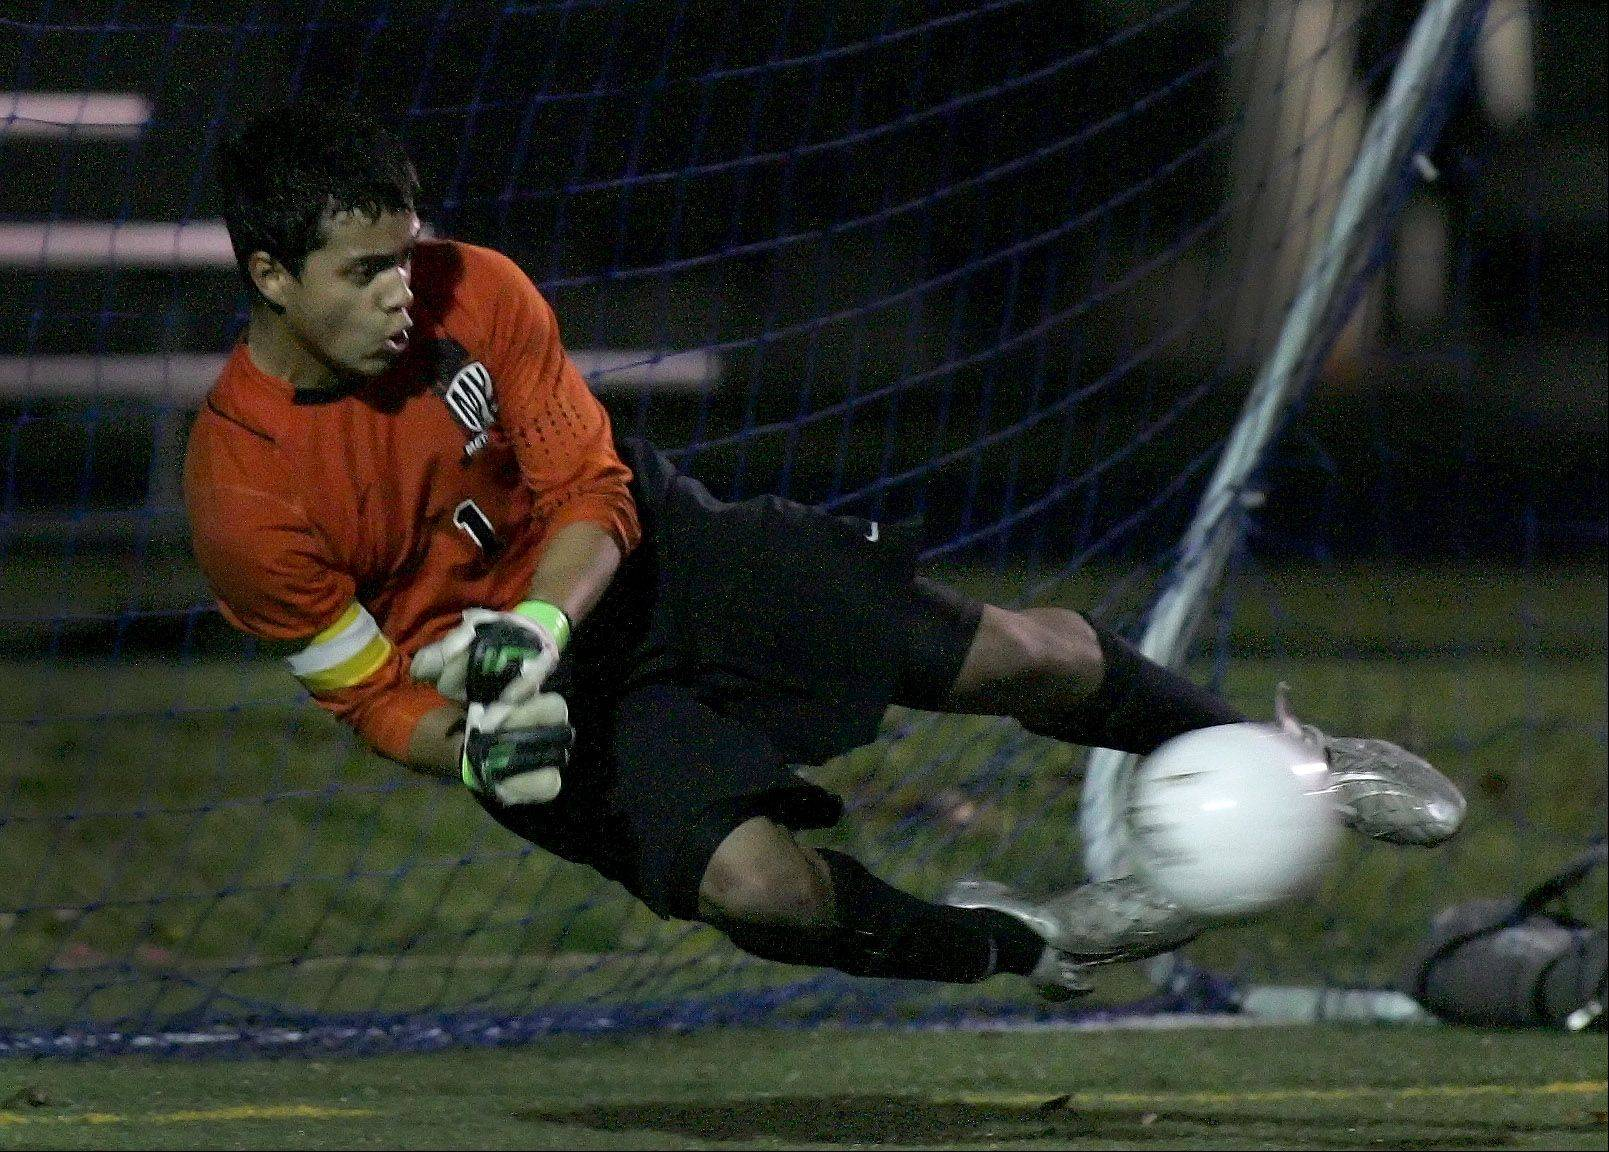 Gabe Gongora-Falla of Metea Valley makes another save at goal late in the second quarter against Wheaton Warrenville South during boys Class 3A sectional soccer in West Chicago.